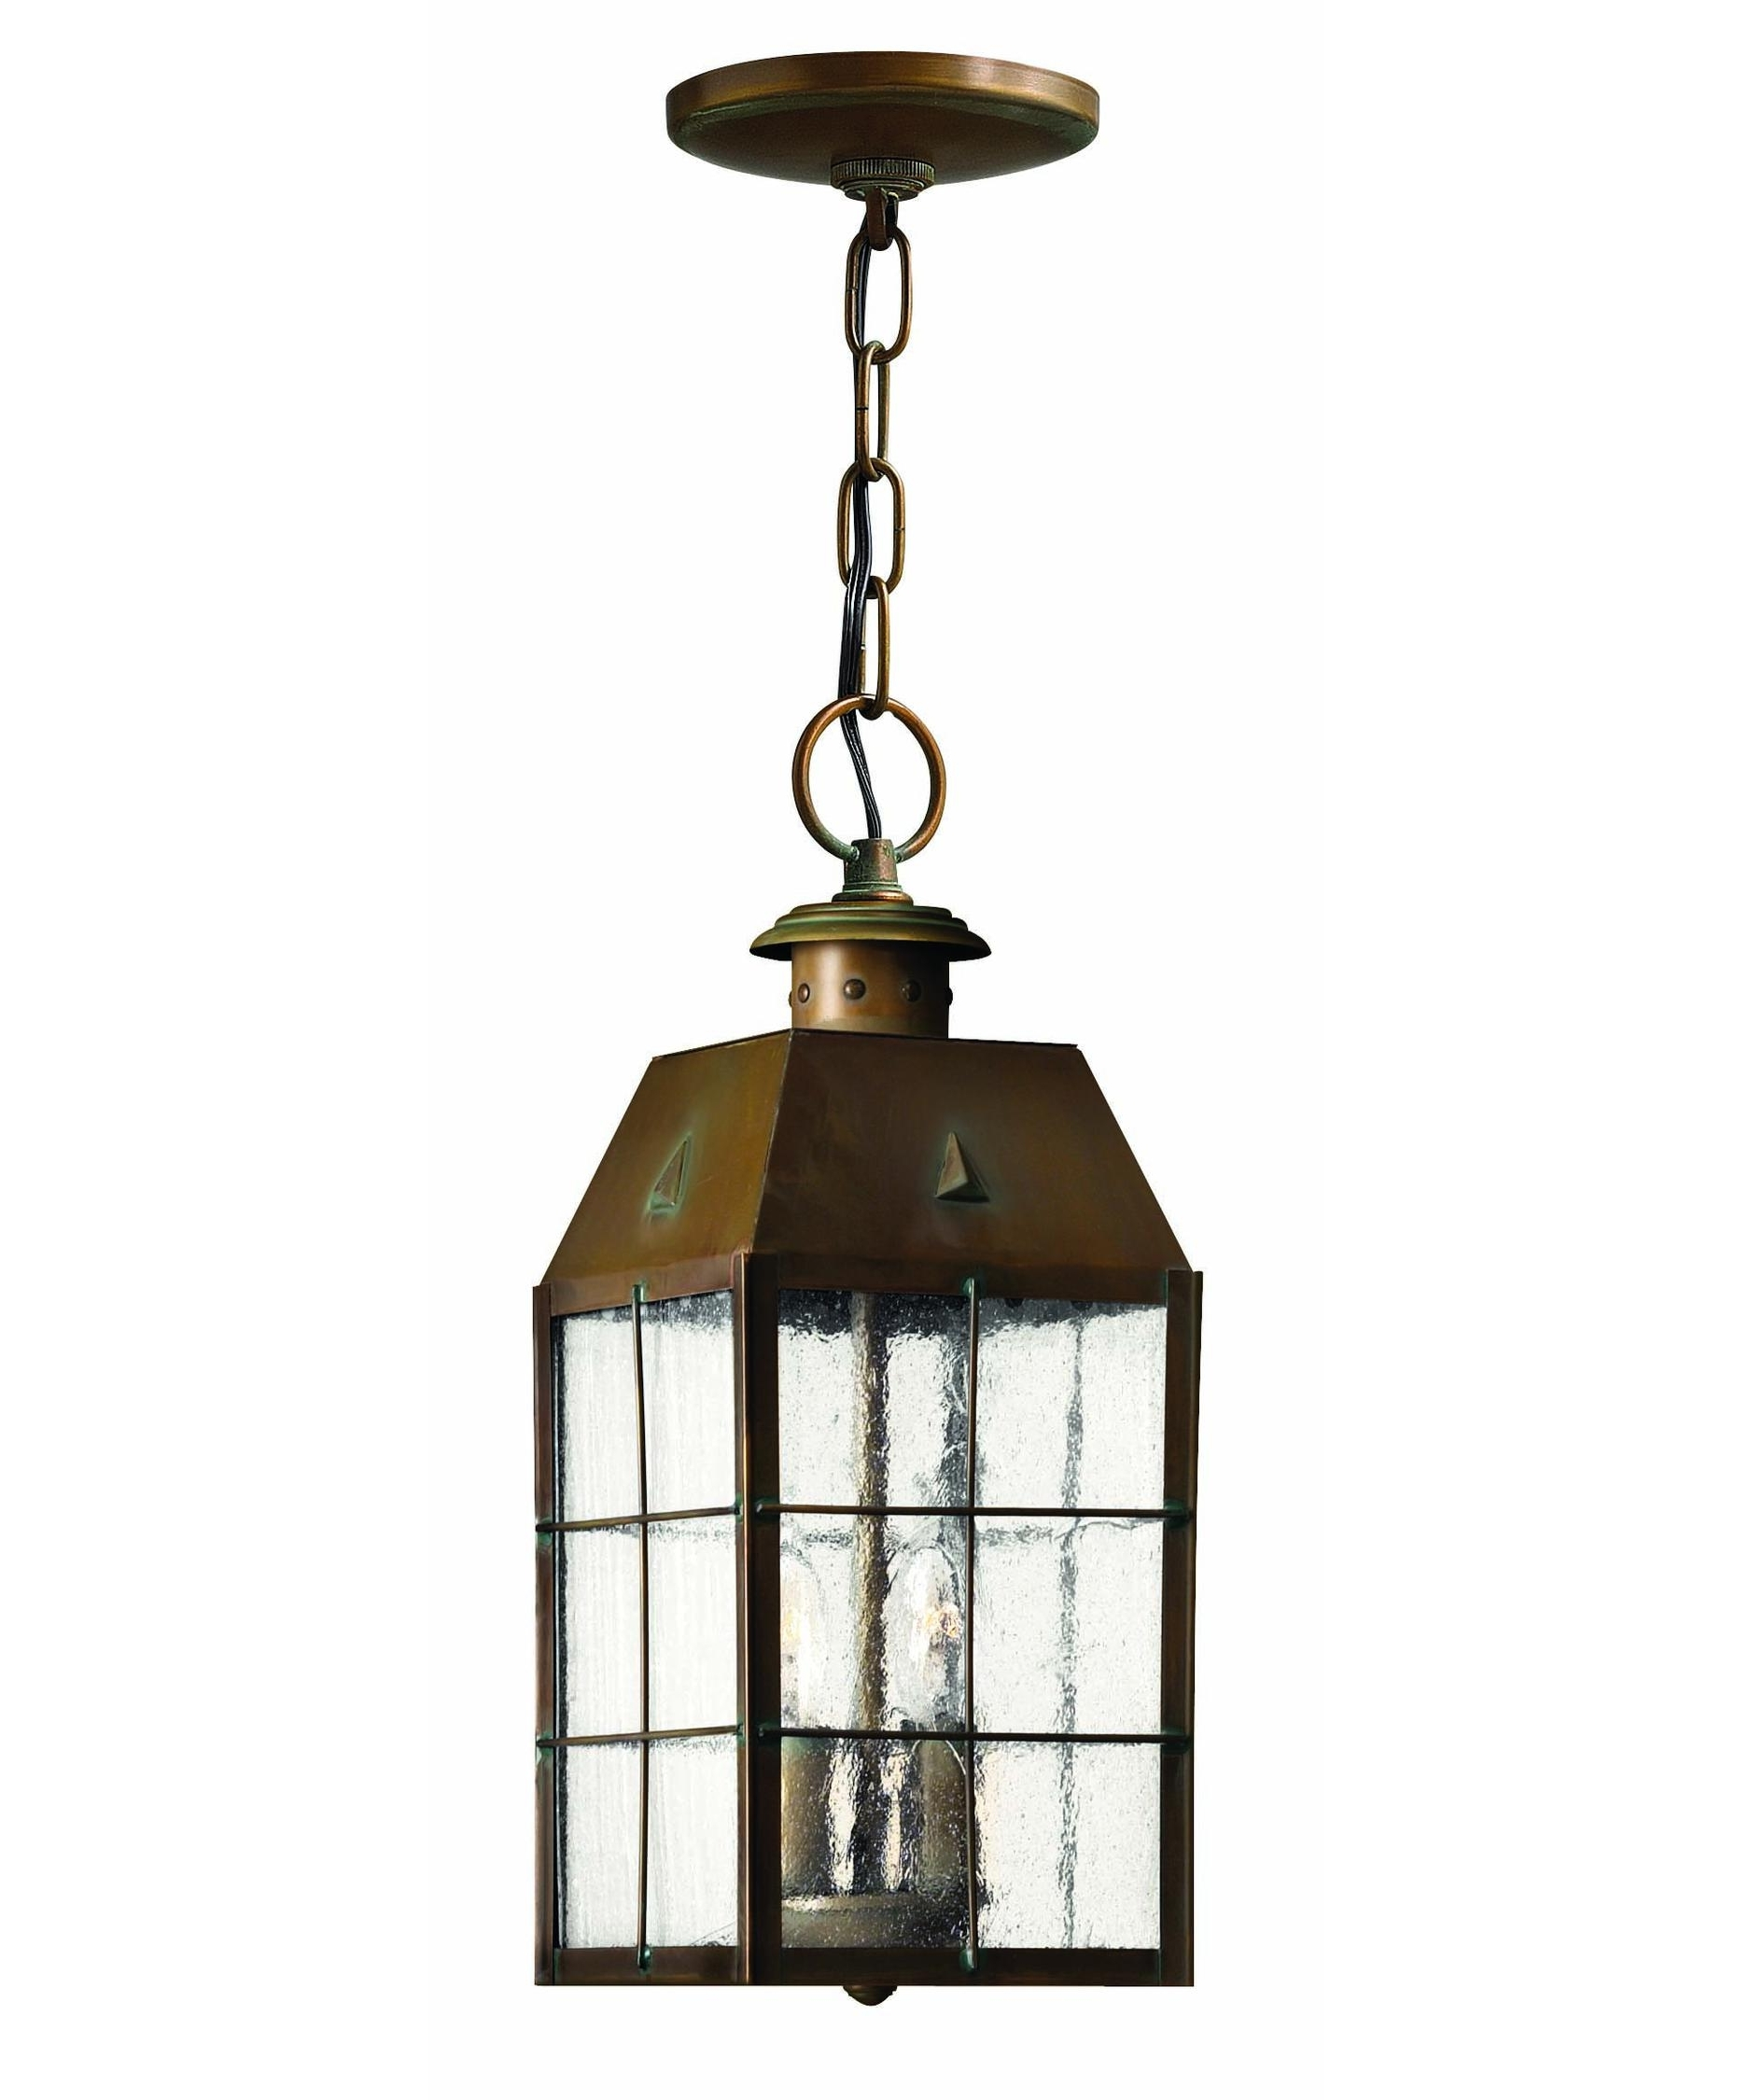 Hinkley Lighting 2372 Nantucket 6 Inch Wide 2 Light Outdoor Hanging Intended For Latest Outdoor Hanging Lamps (Gallery 18 of 20)